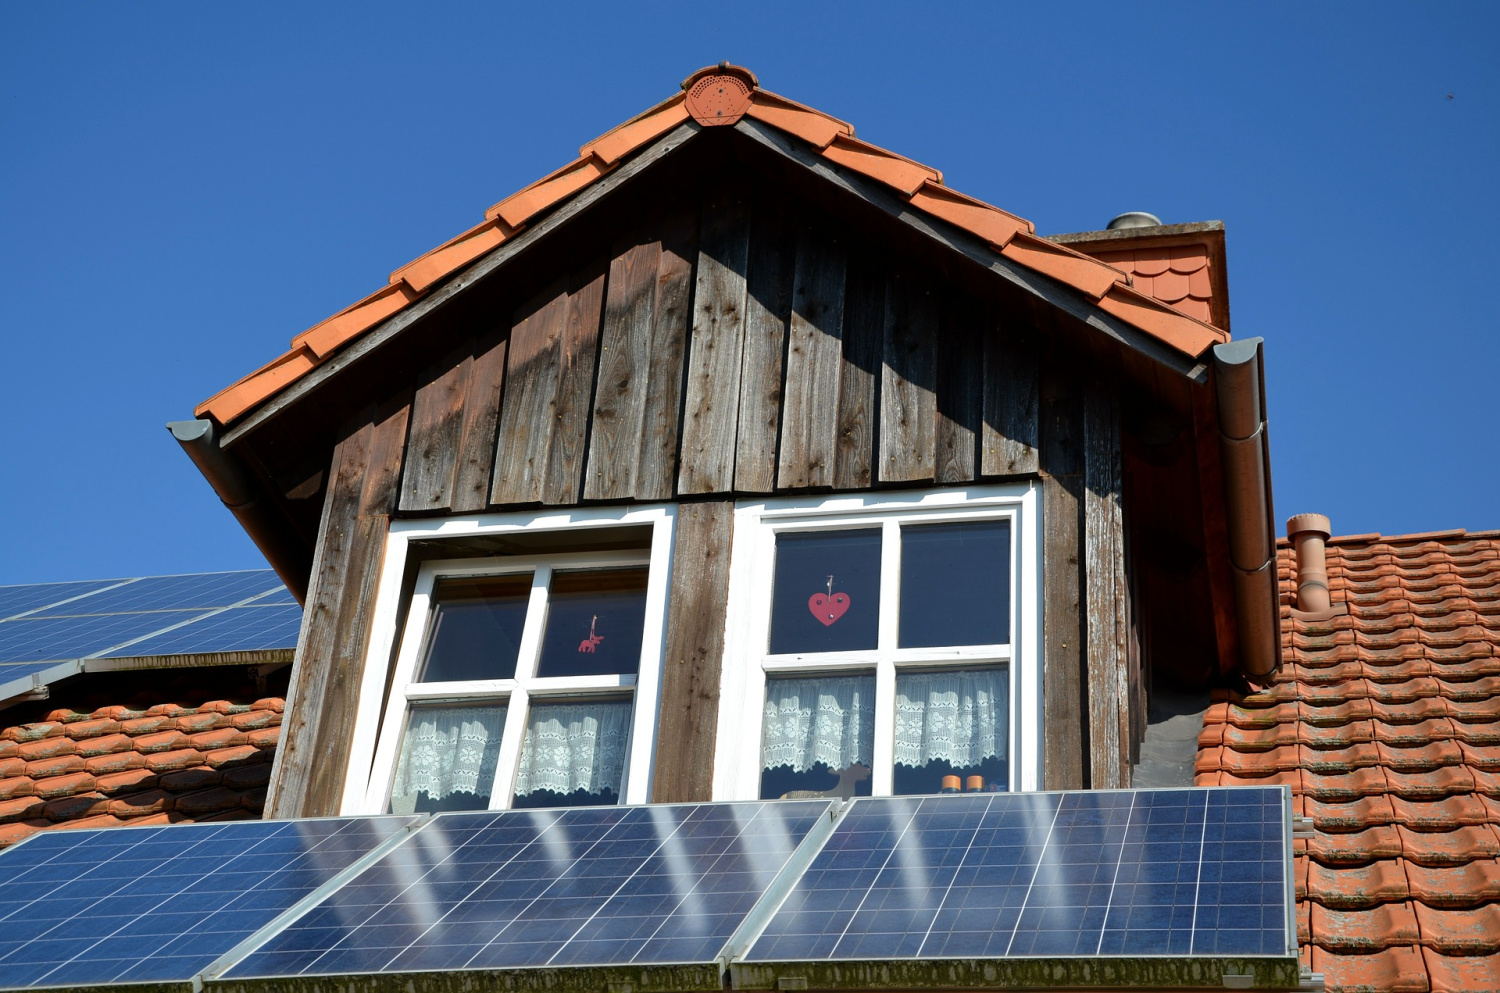 solar panels on a roof are one of the ways to power your home for less